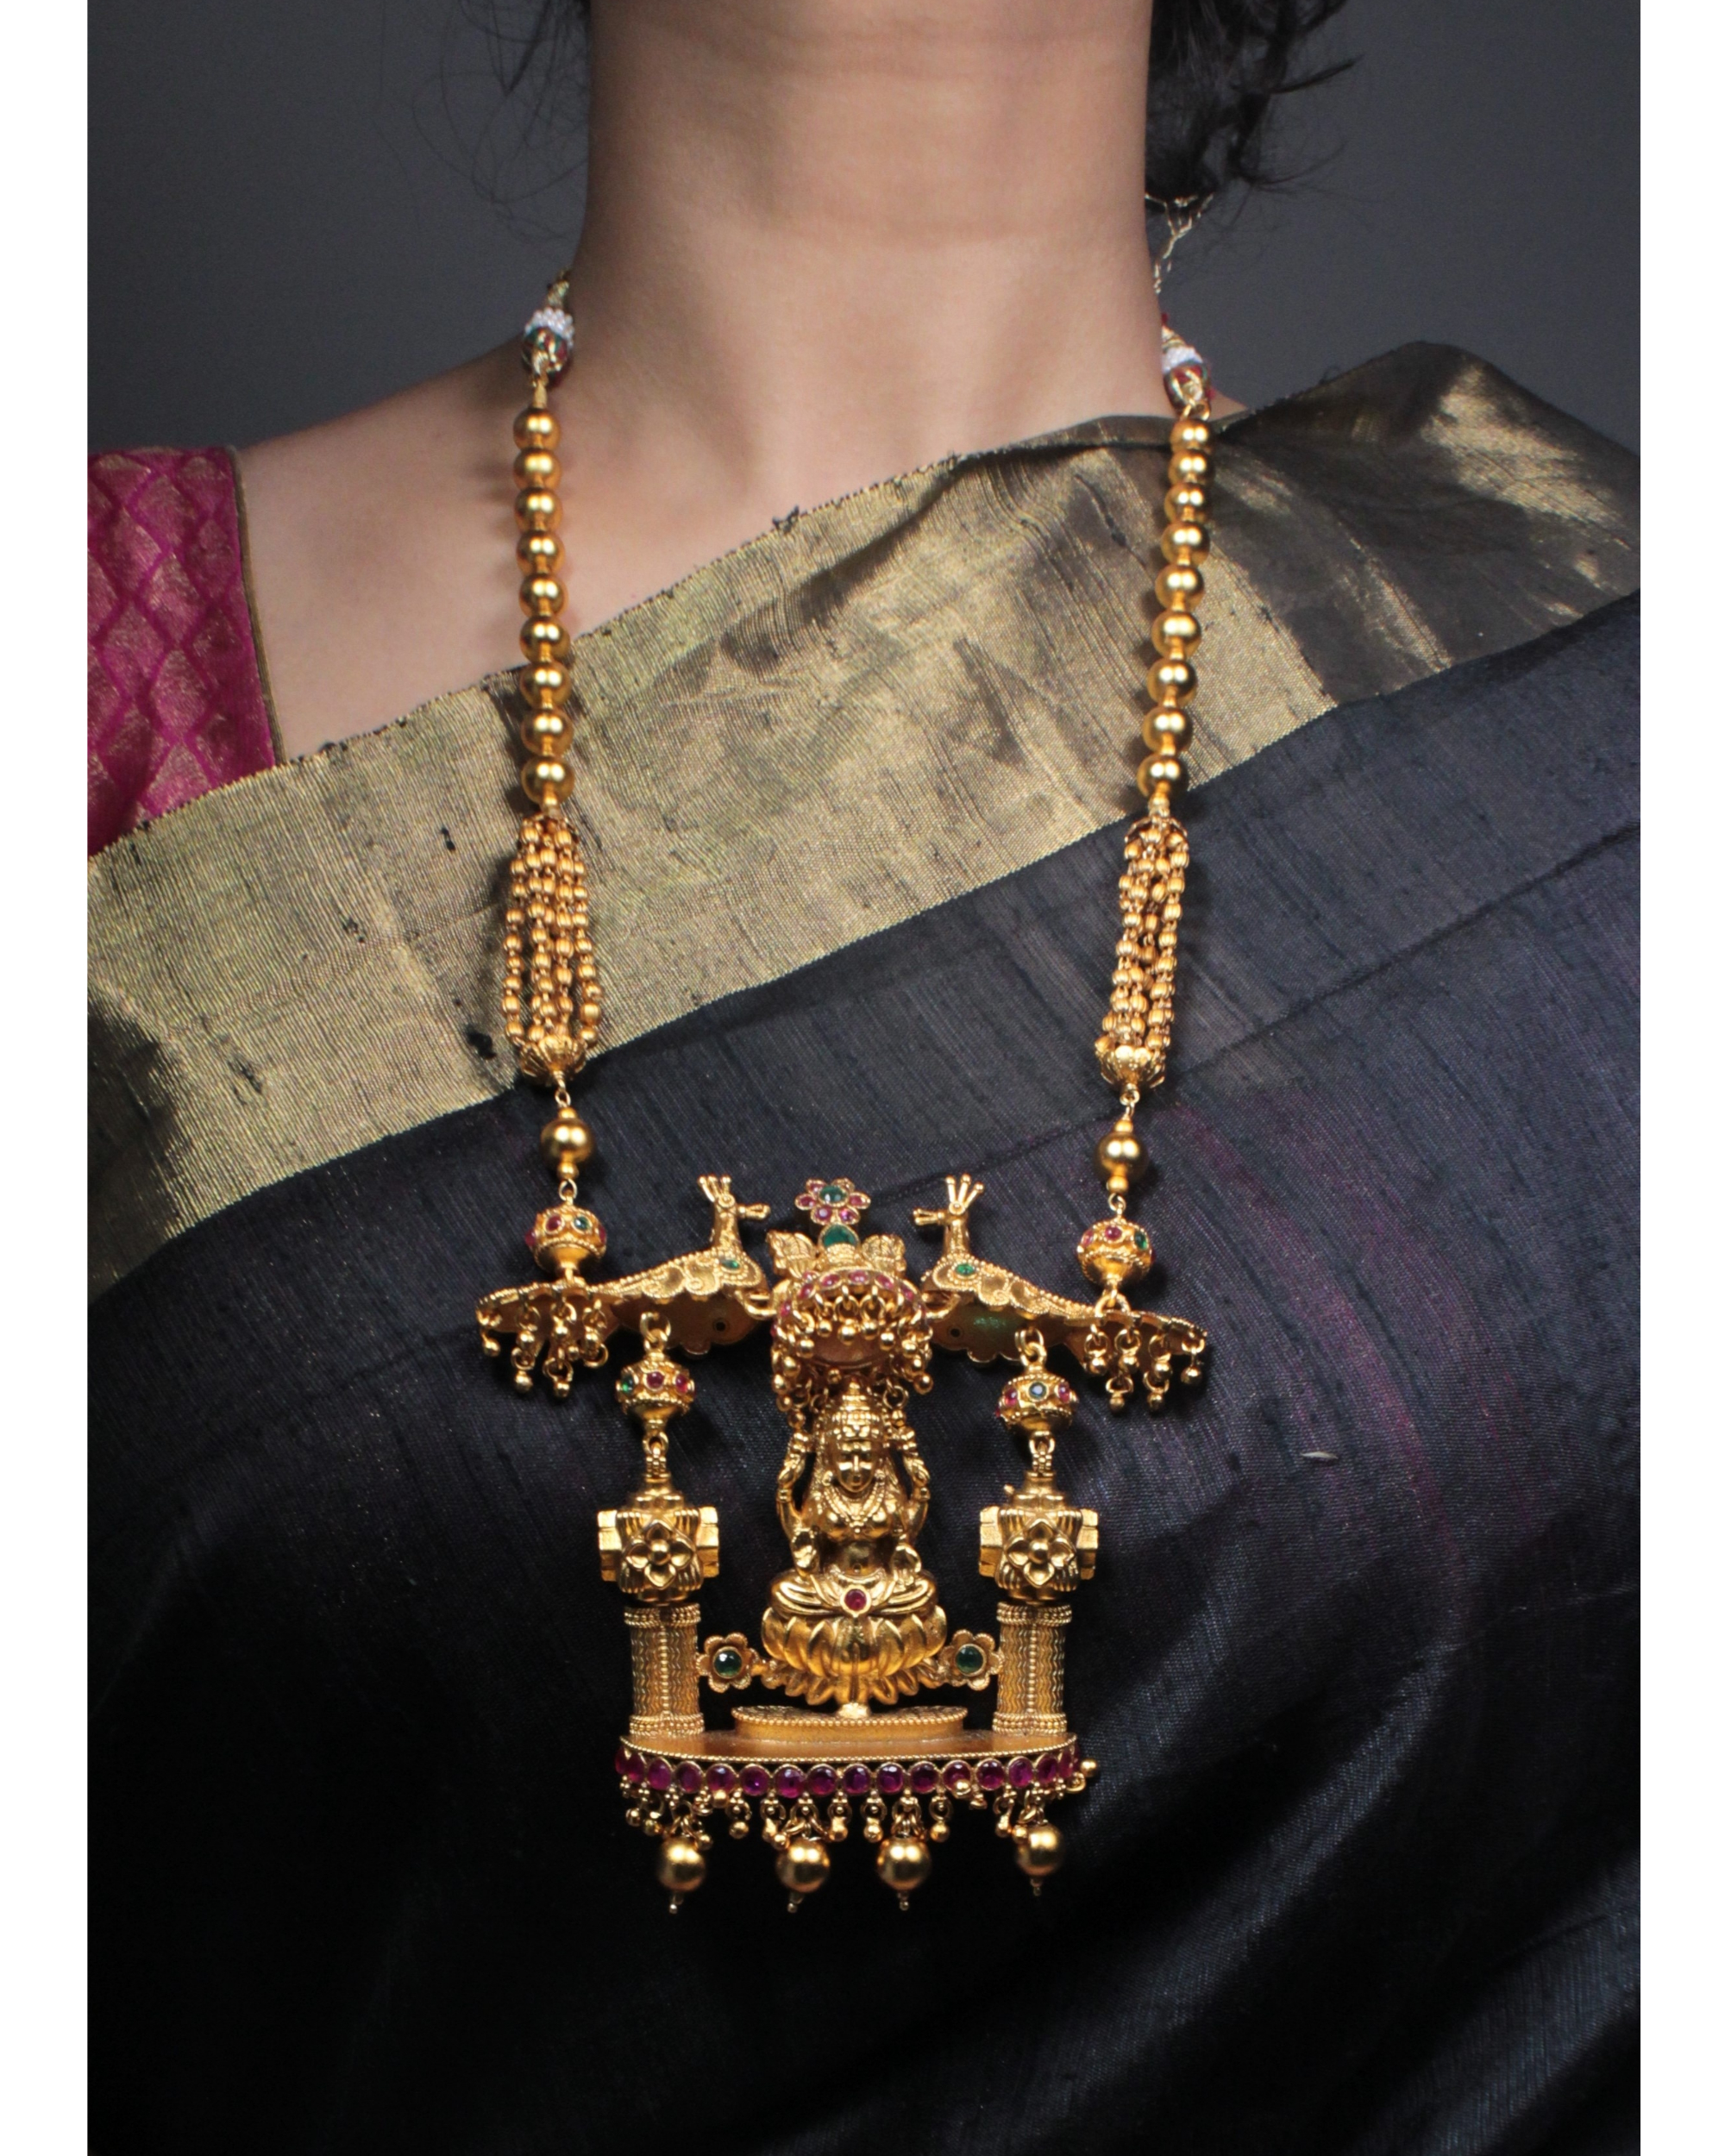 Lakshmi and peacock motif necklace and earring set - set of two